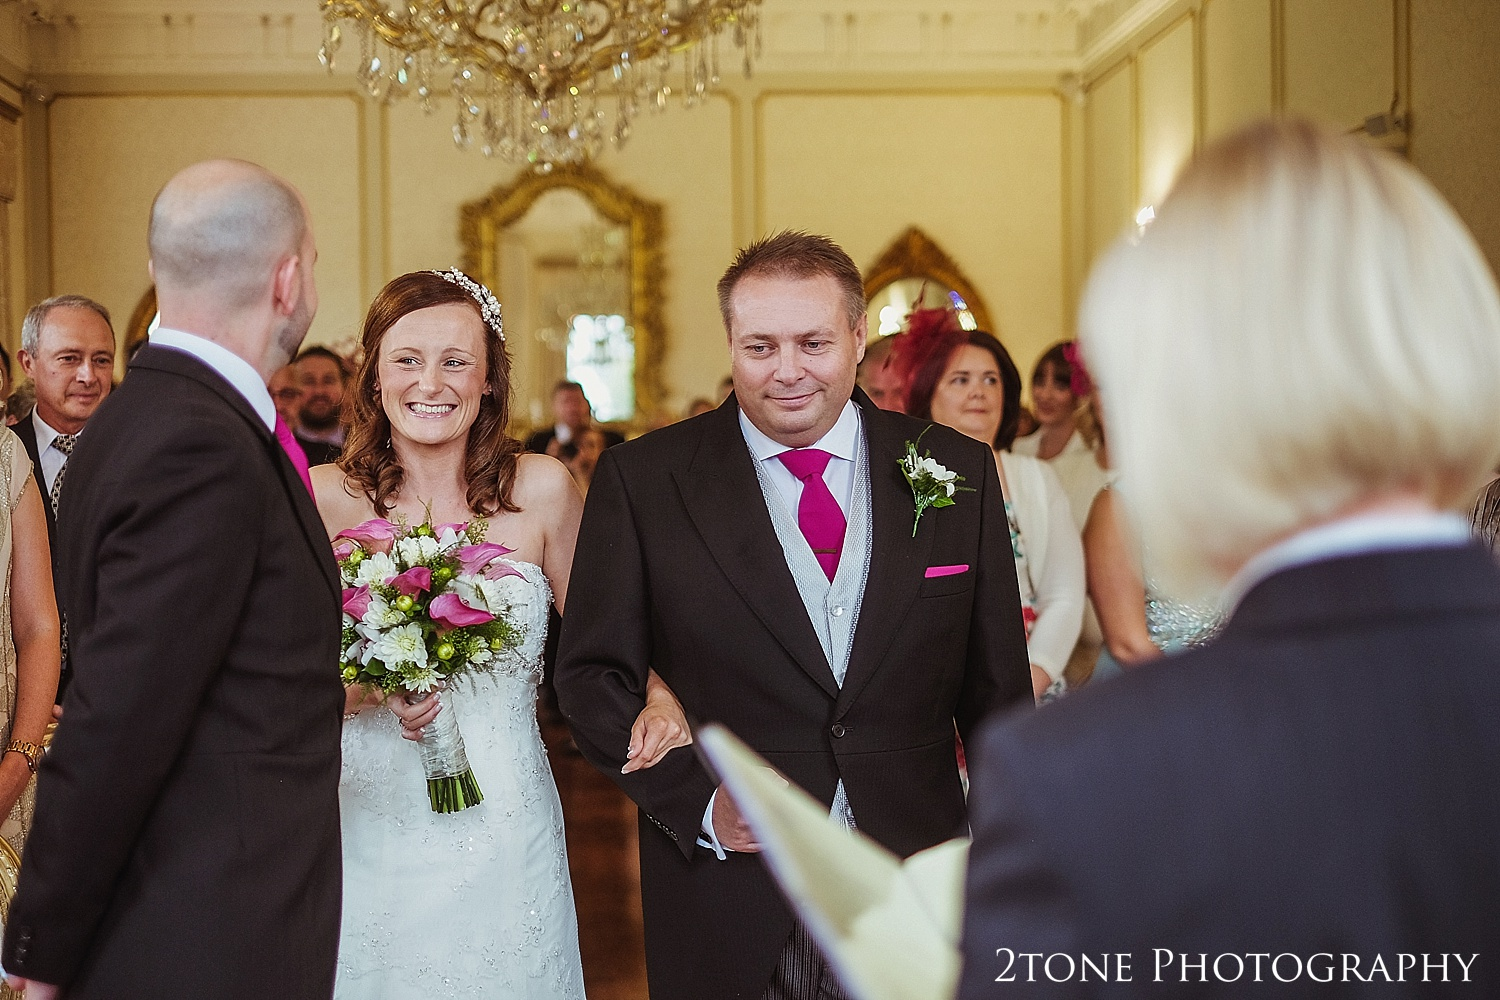 The wedding ceremony was held in one of Lartington Hall's elegant state rooms.  Decorated in gold with opulent chandeliers made it perfect for the occasion.